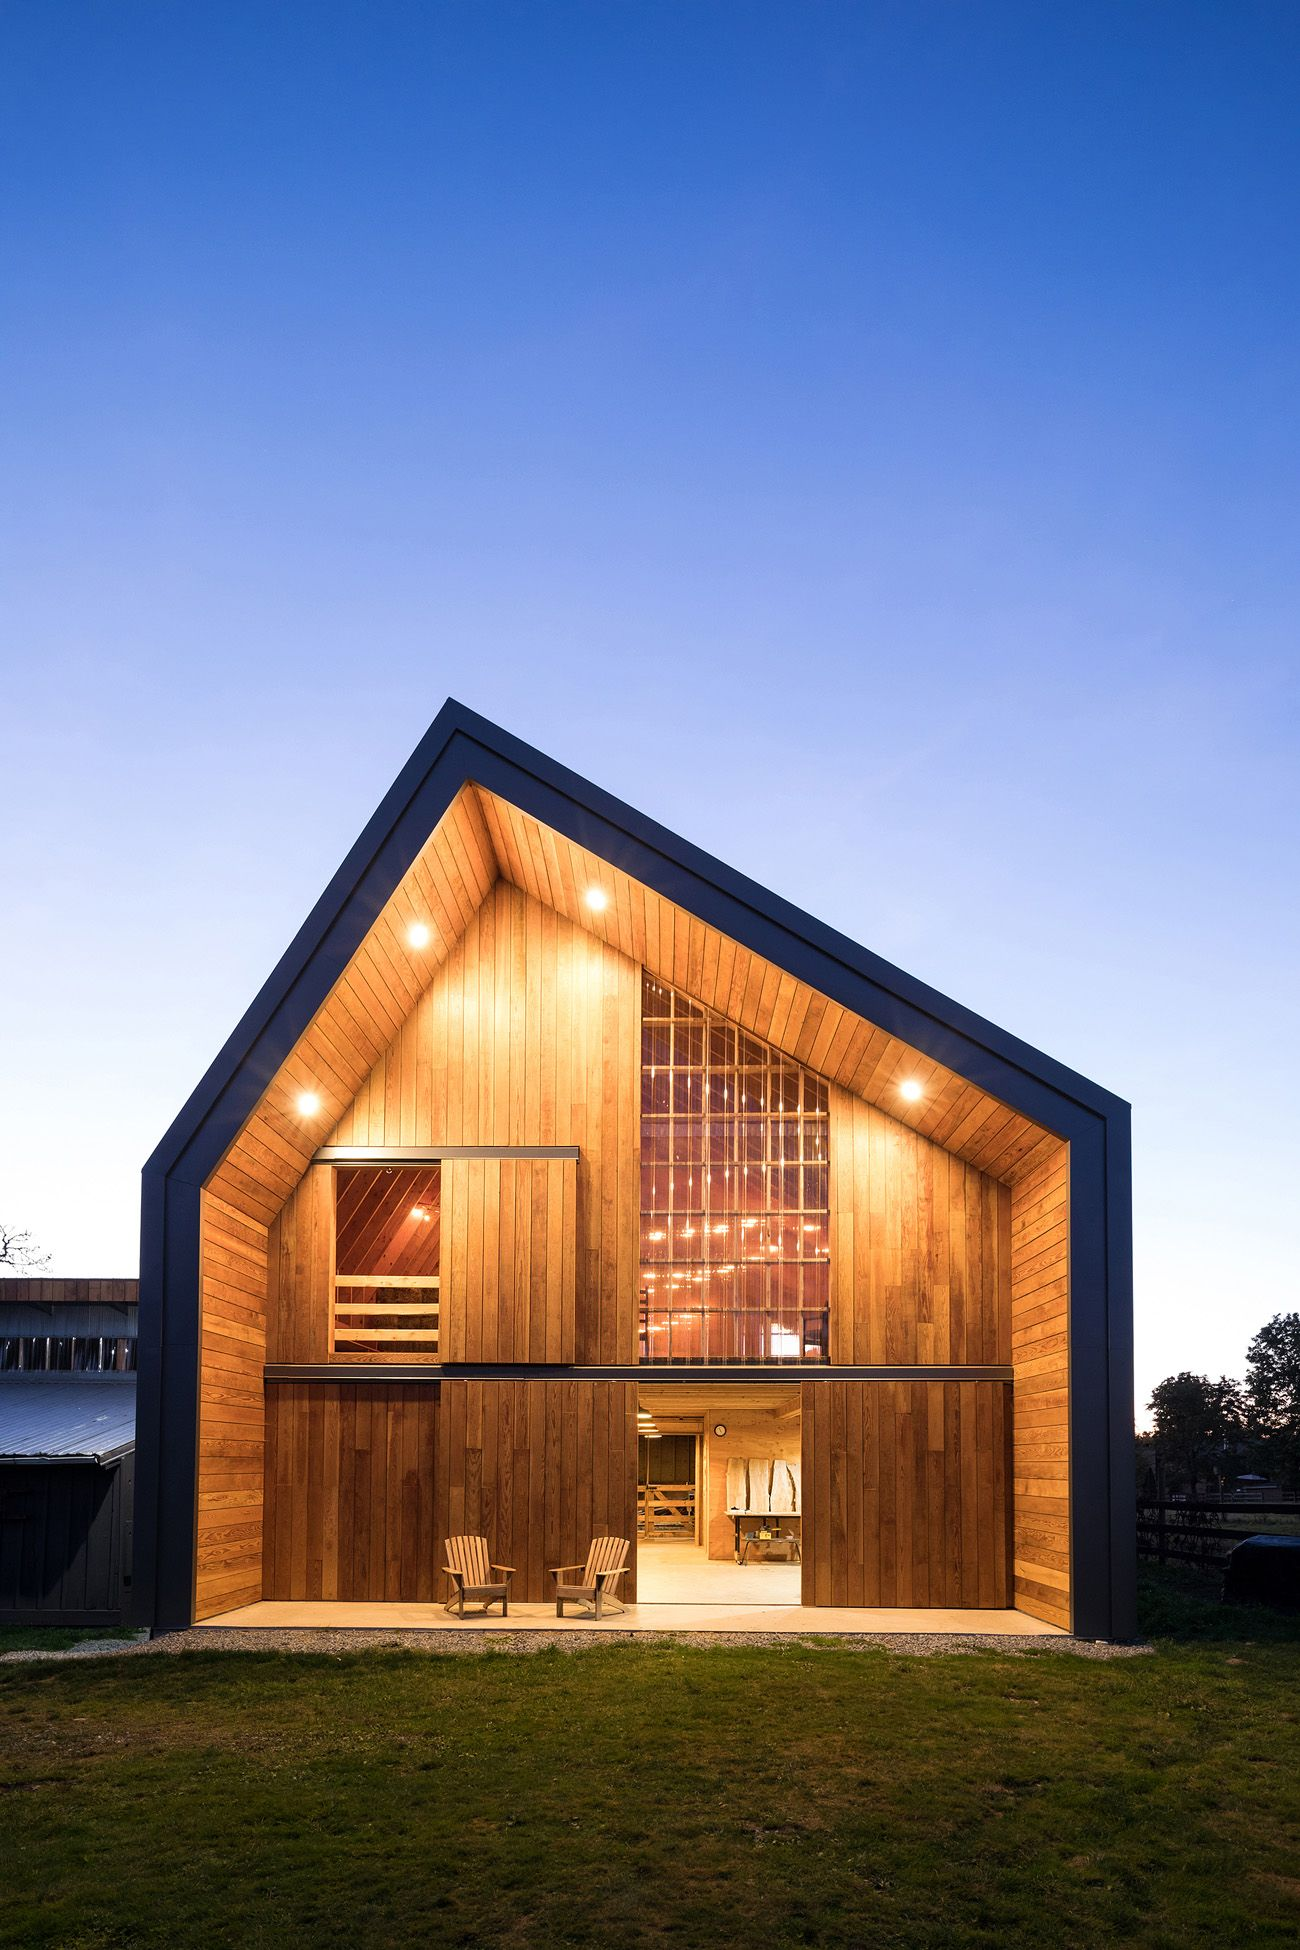 Modern Wooden Barn by MOTIV Architects | Home sweet home | Pinterest ...